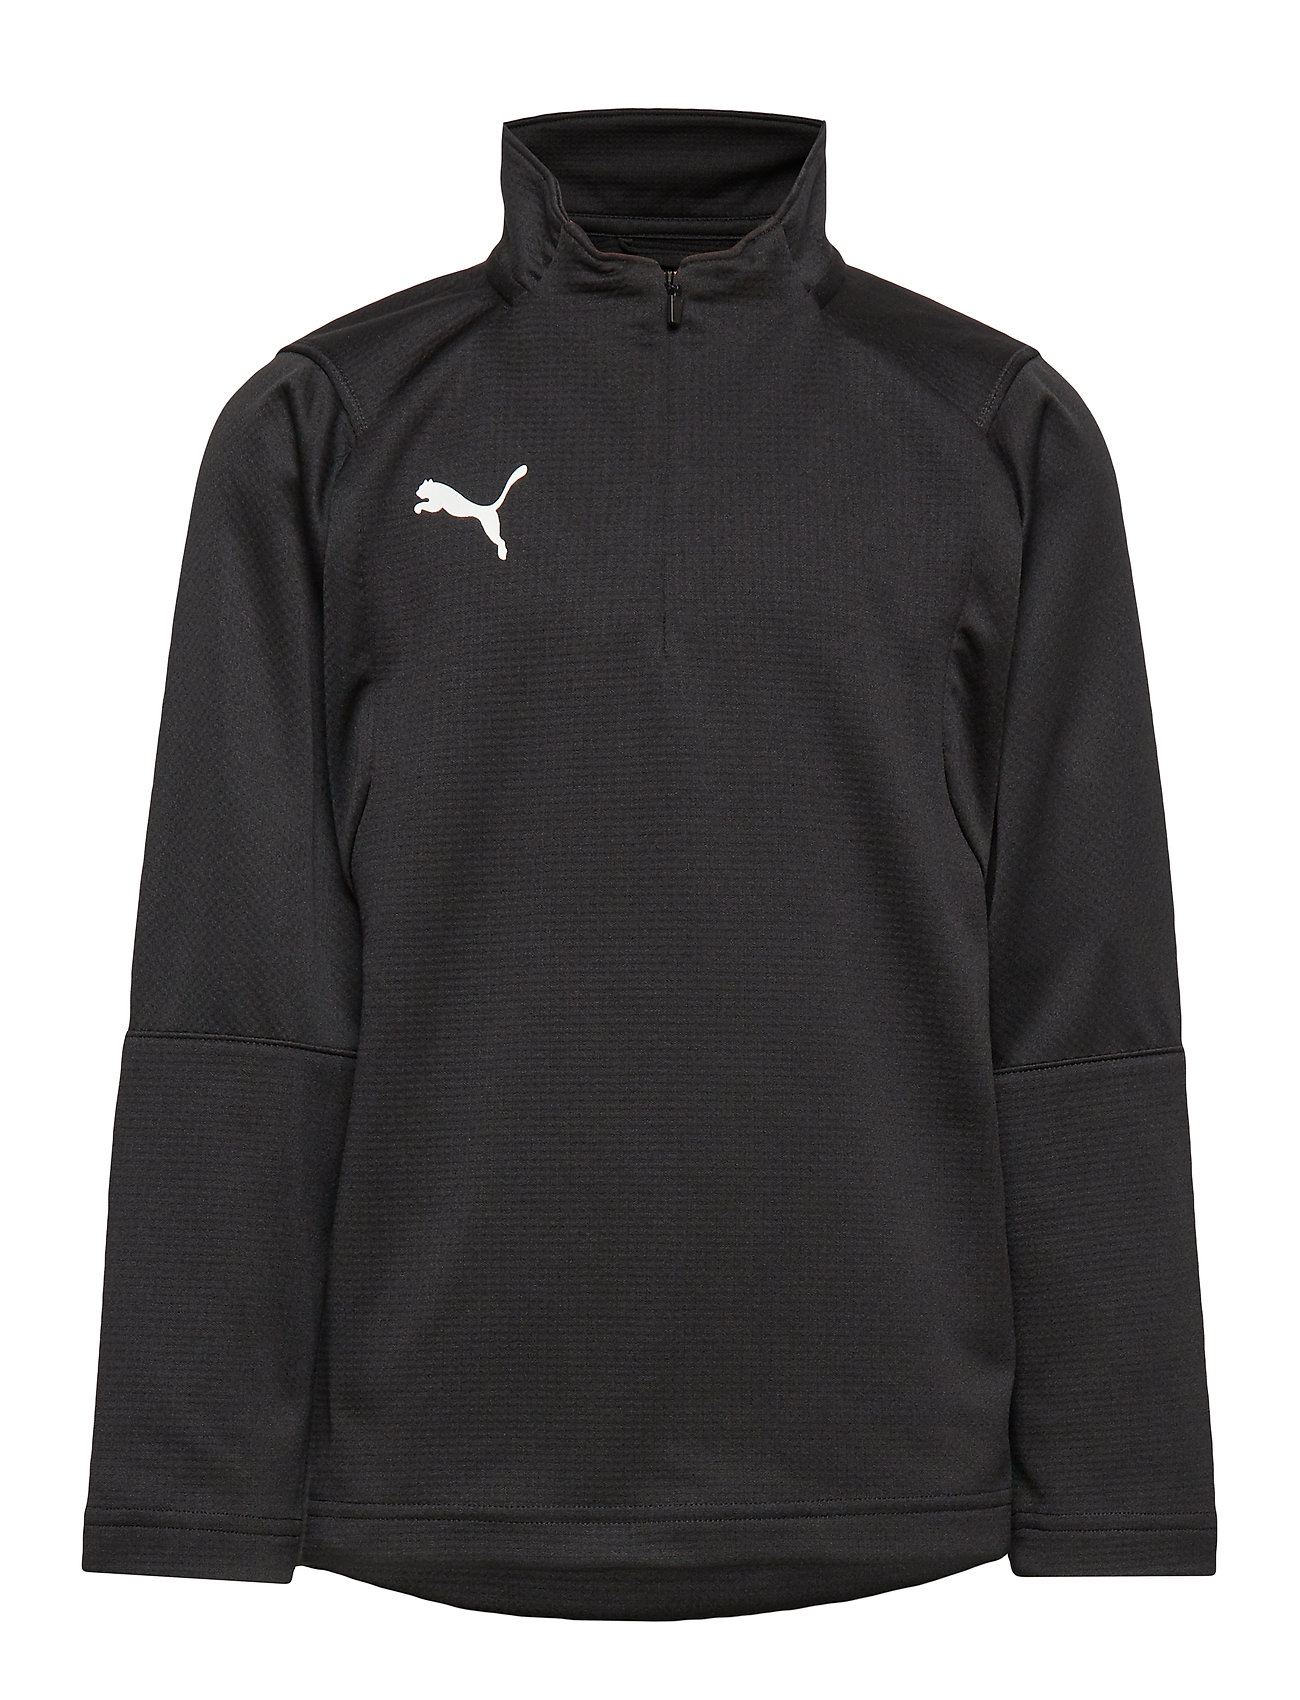 PUMA LIGA Training 1/4 Zip Top Jr - PUMA BLACK-PUMA WHITE